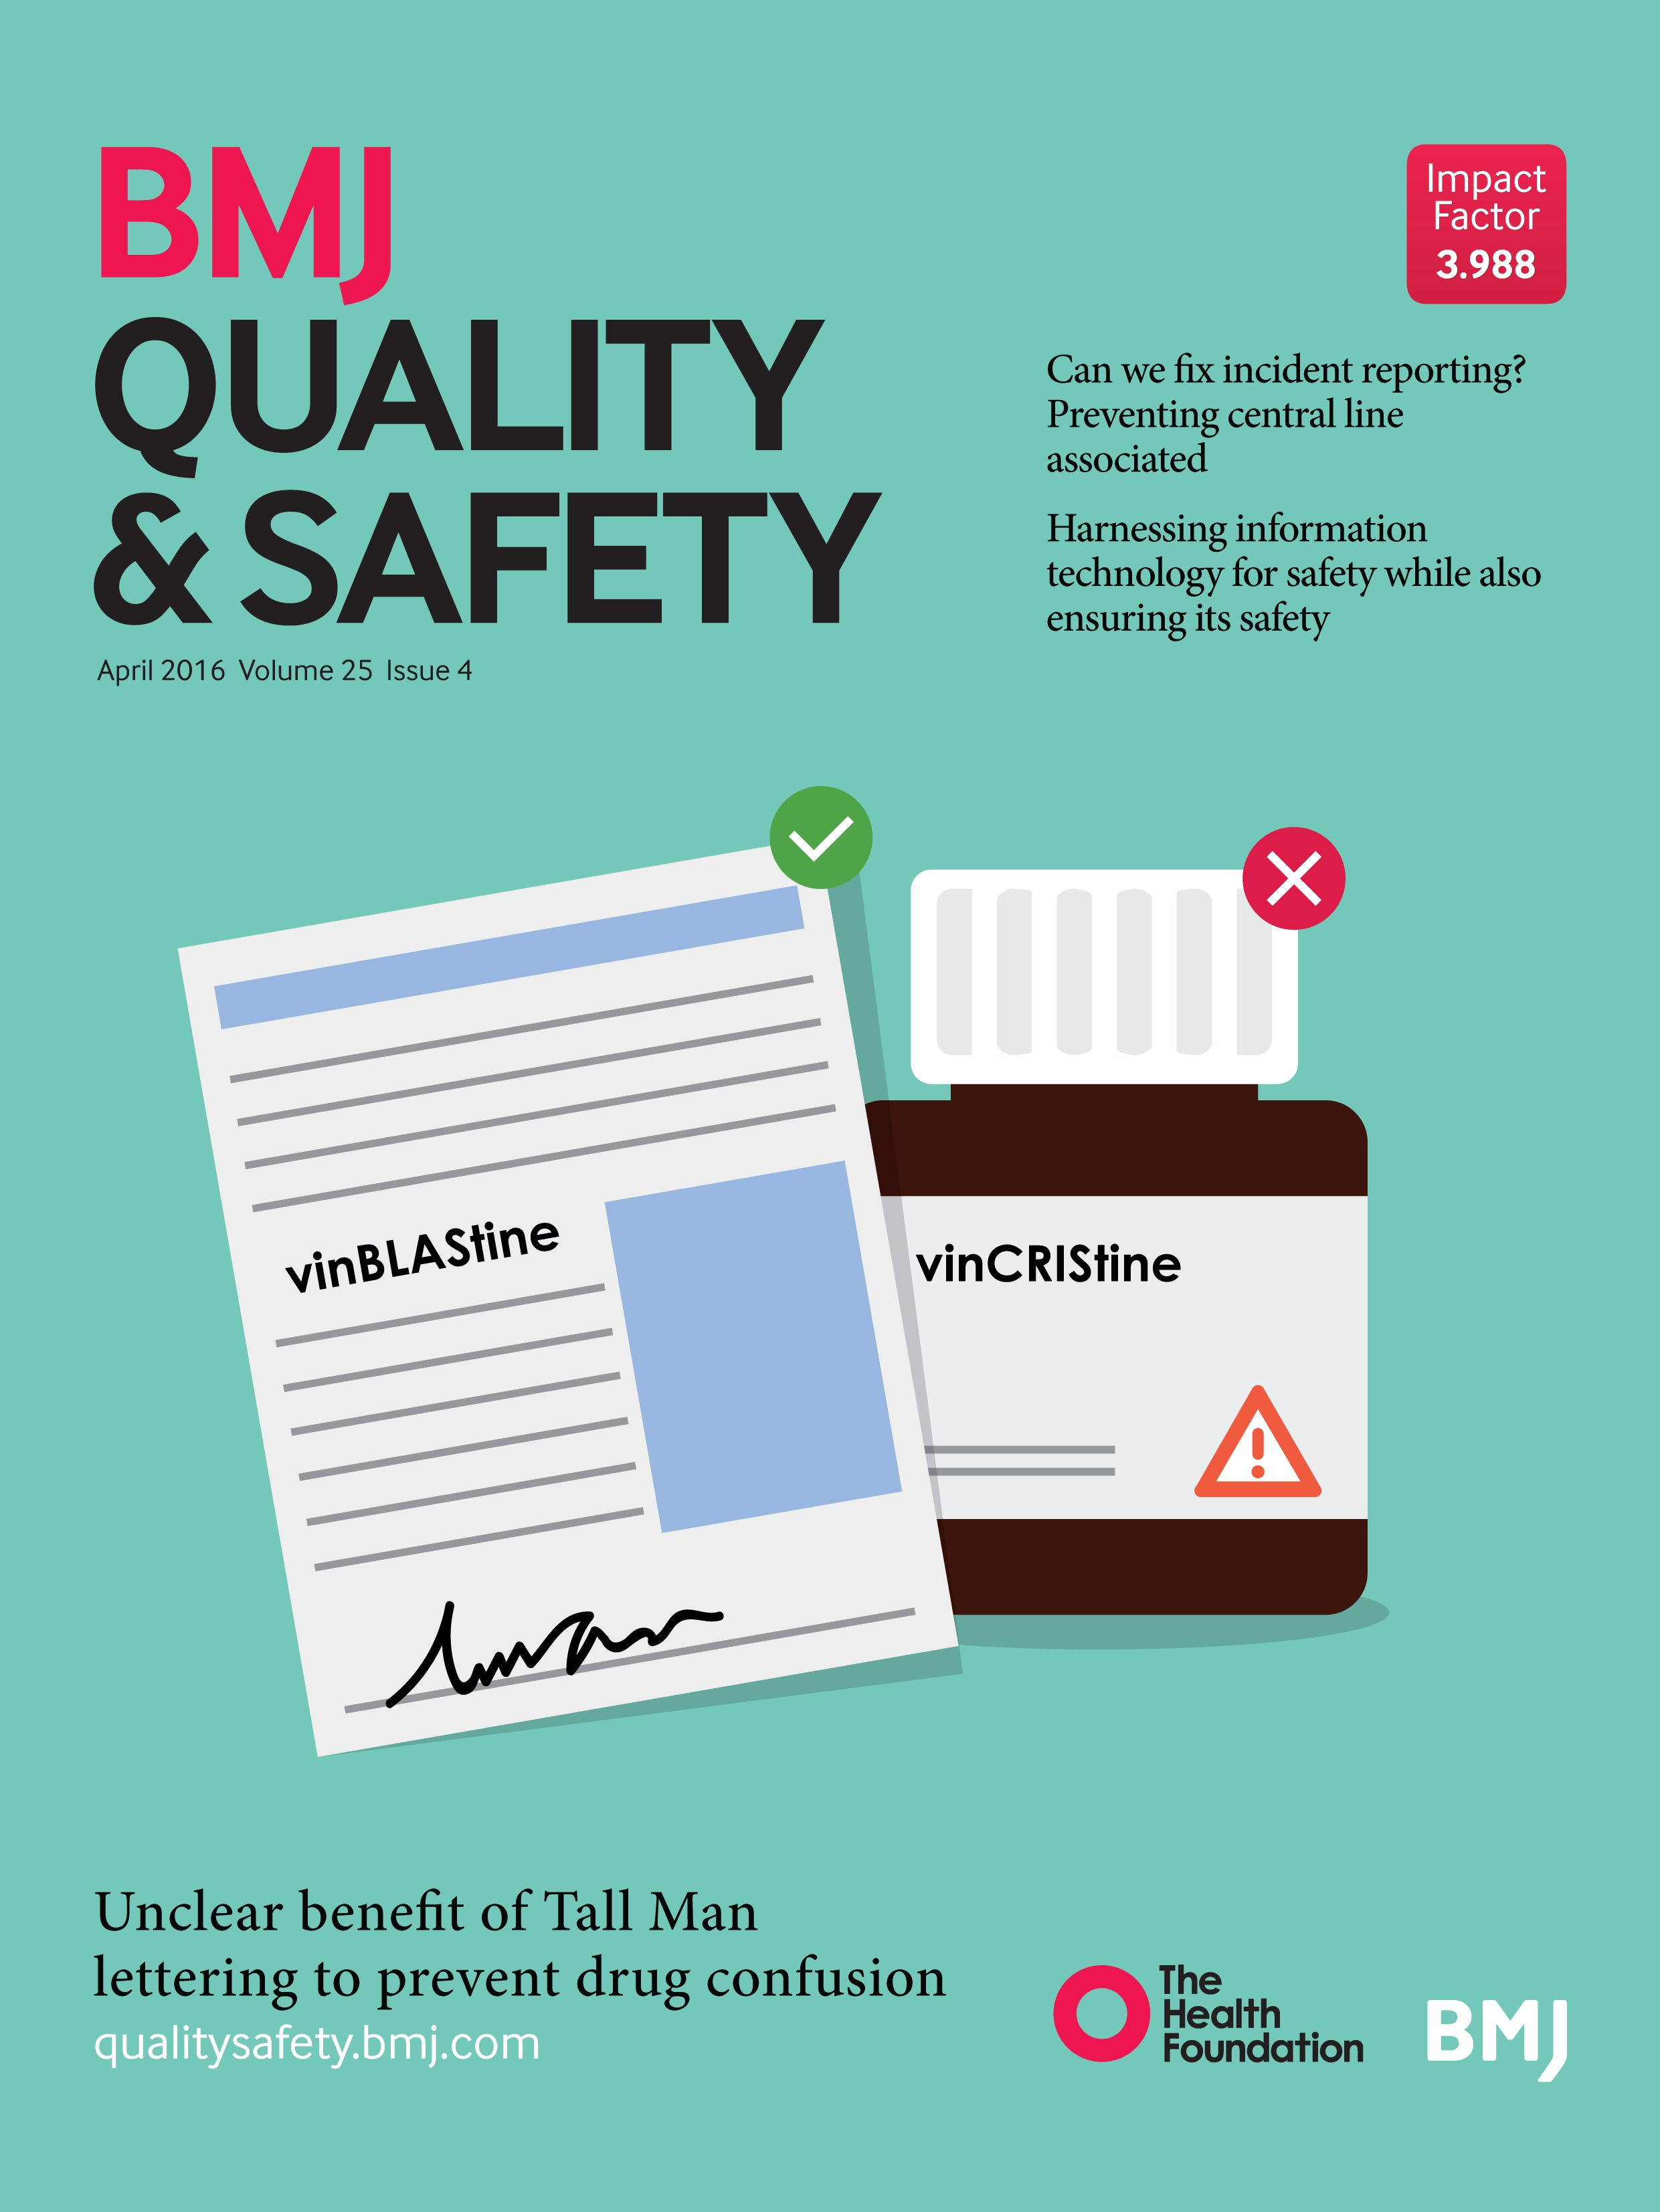 Measuring And Improving Patient Safety Through Health Information